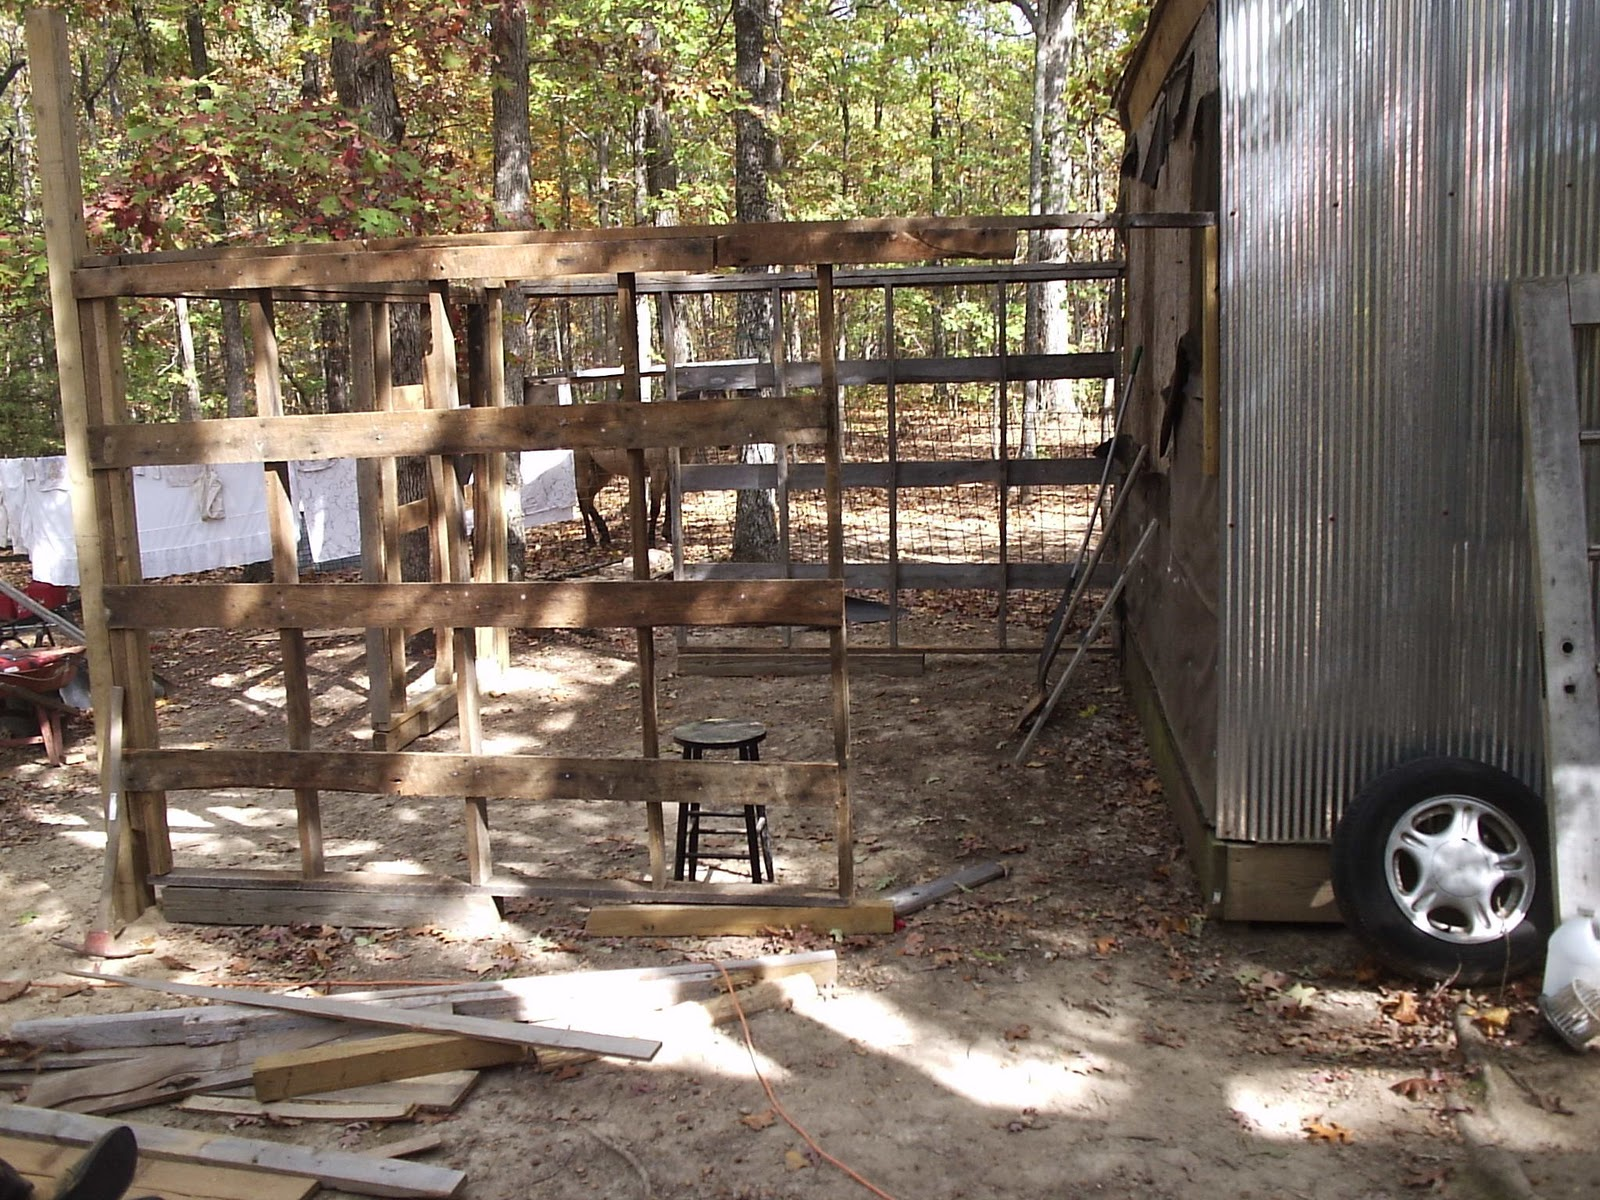 Horse barn construction cost 8x10x12x14x16x18x20x22x24 josep for Cost of building a horse barn